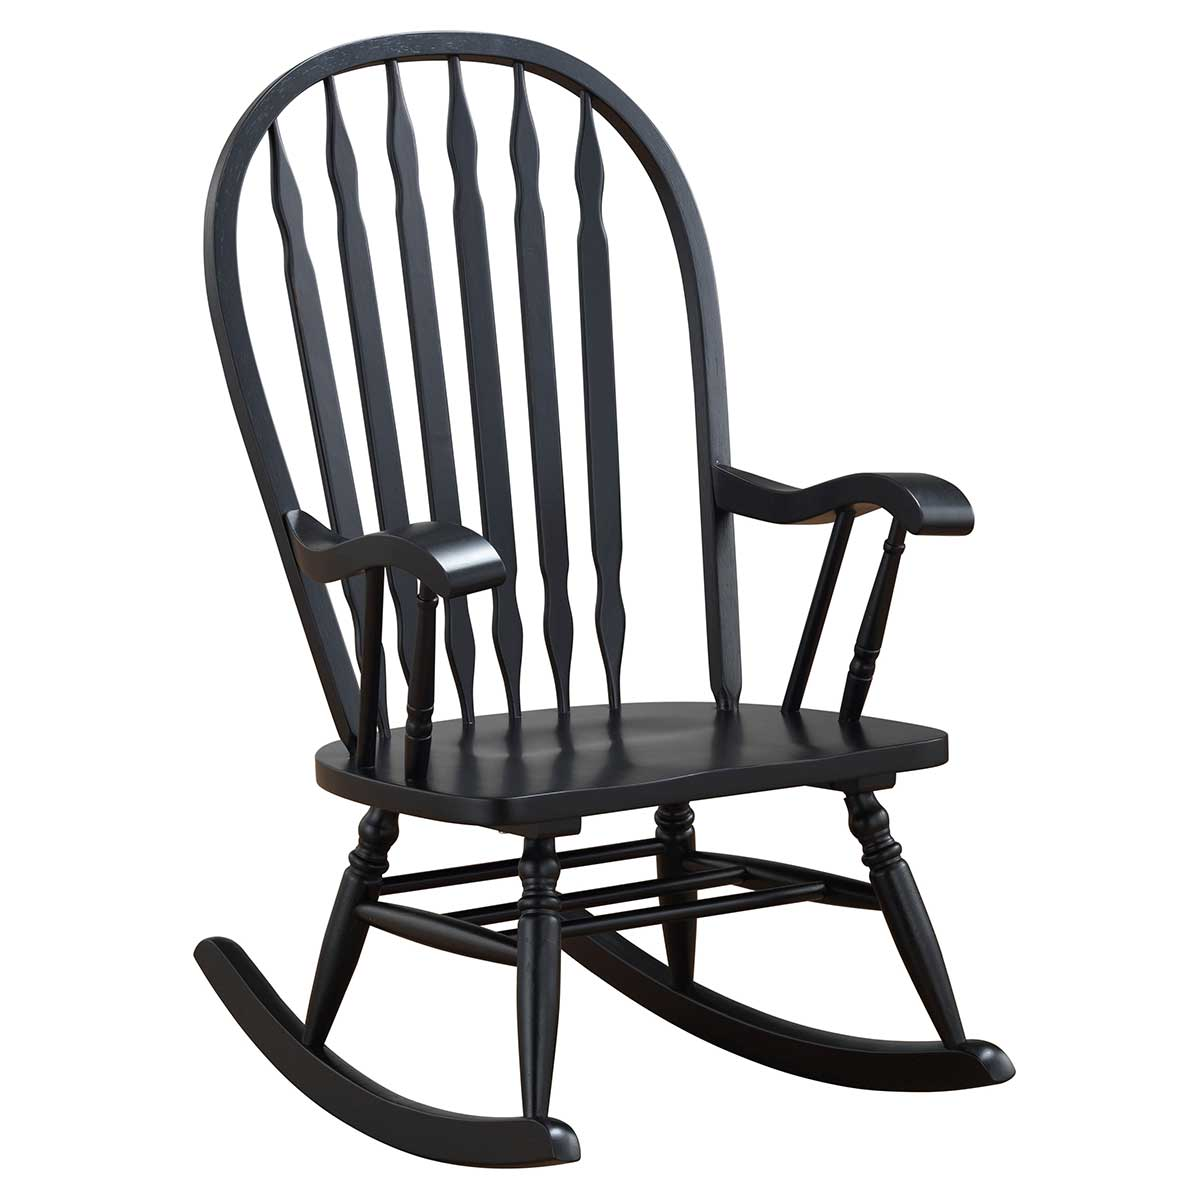 Outstanding Black Classic Americana Style Windsor Rocker Gmtry Best Dining Table And Chair Ideas Images Gmtryco